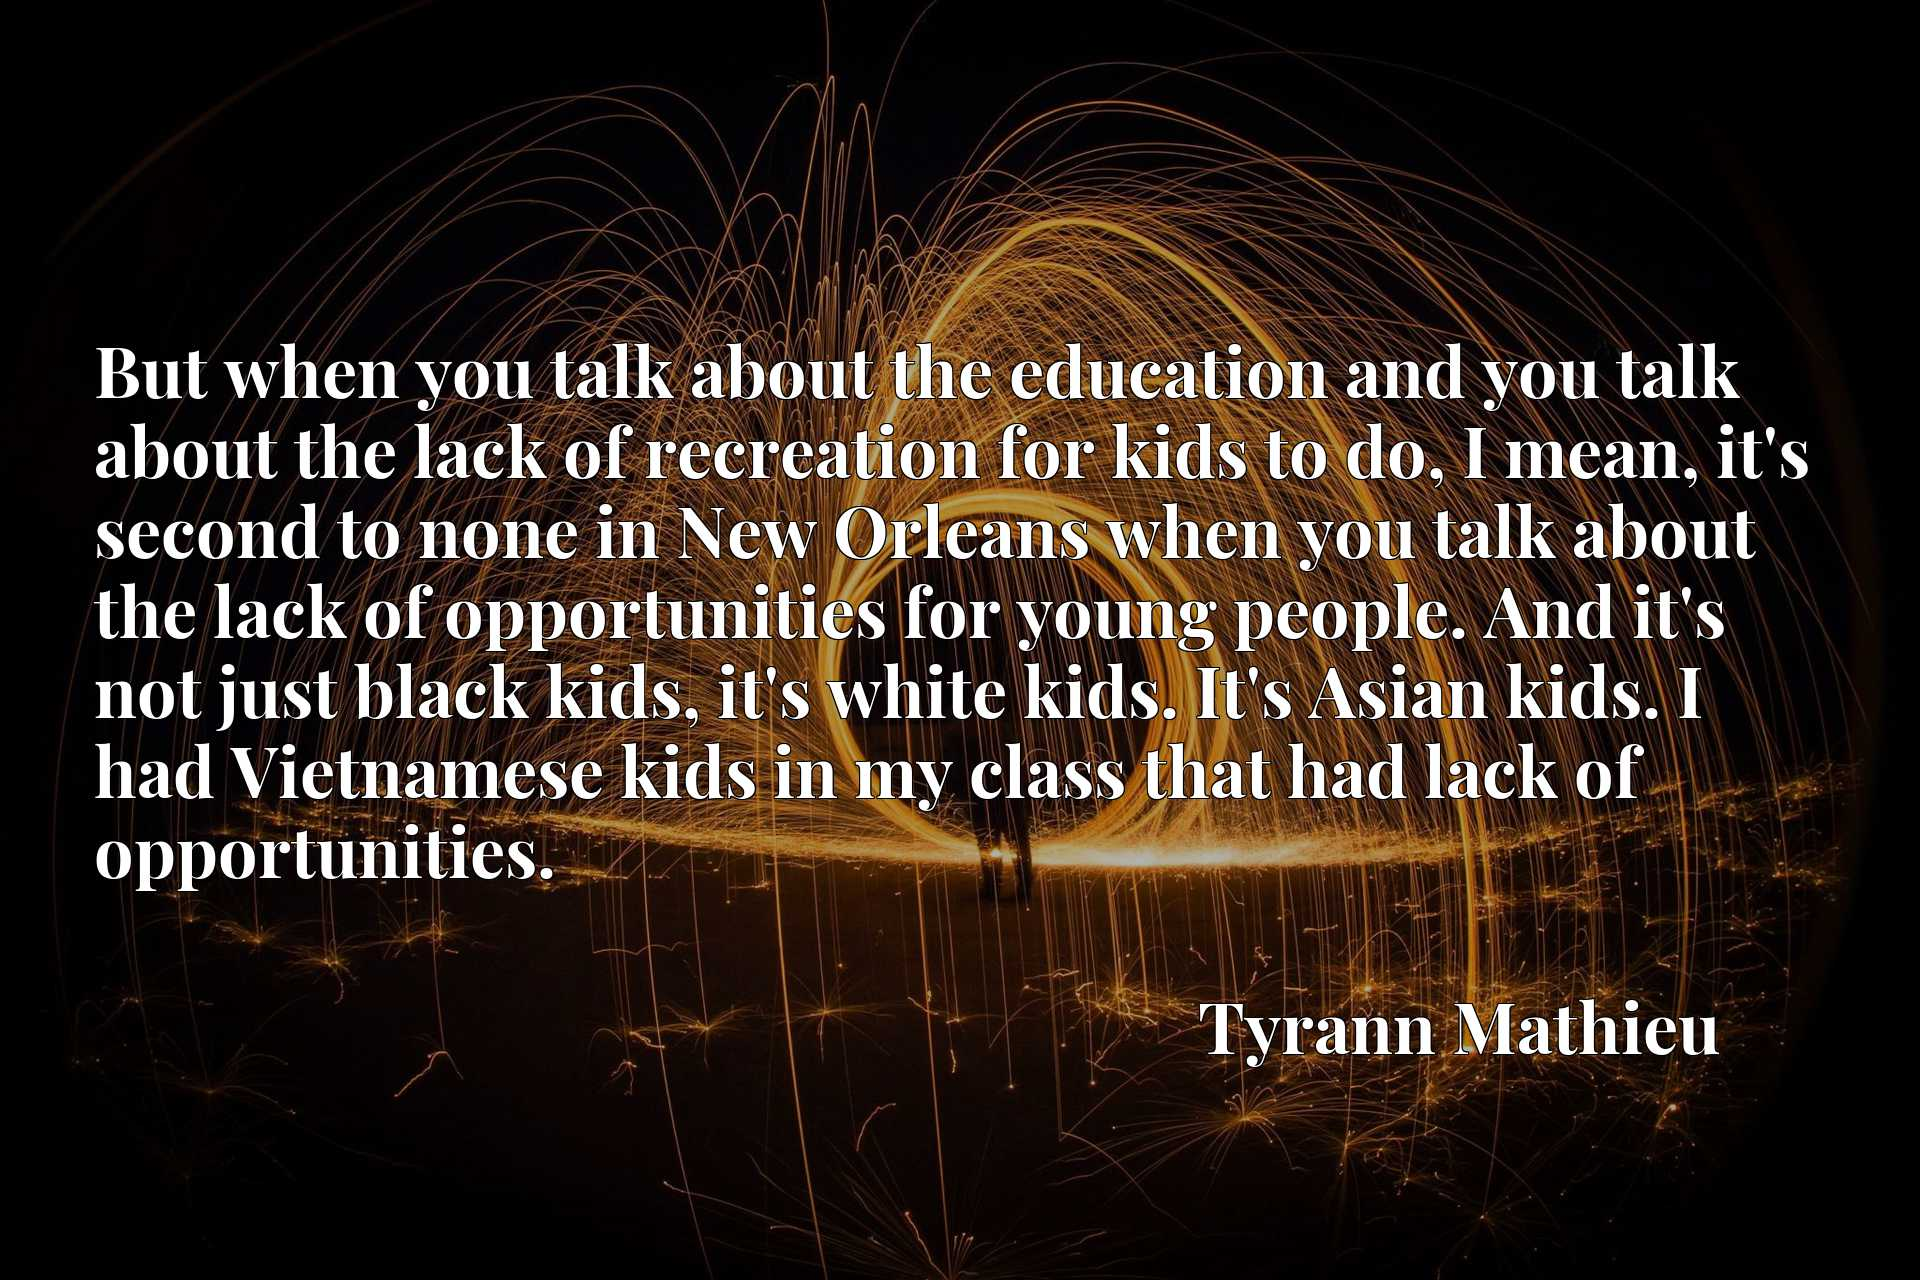 But when you talk about the education and you talk about the lack of recreation for kids to do, I mean, it's second to none in New Orleans when you talk about the lack of opportunities for young people. And it's not just black kids, it's white kids. It's Asian kids. I had Vietnamese kids in my class that had lack of opportunities.